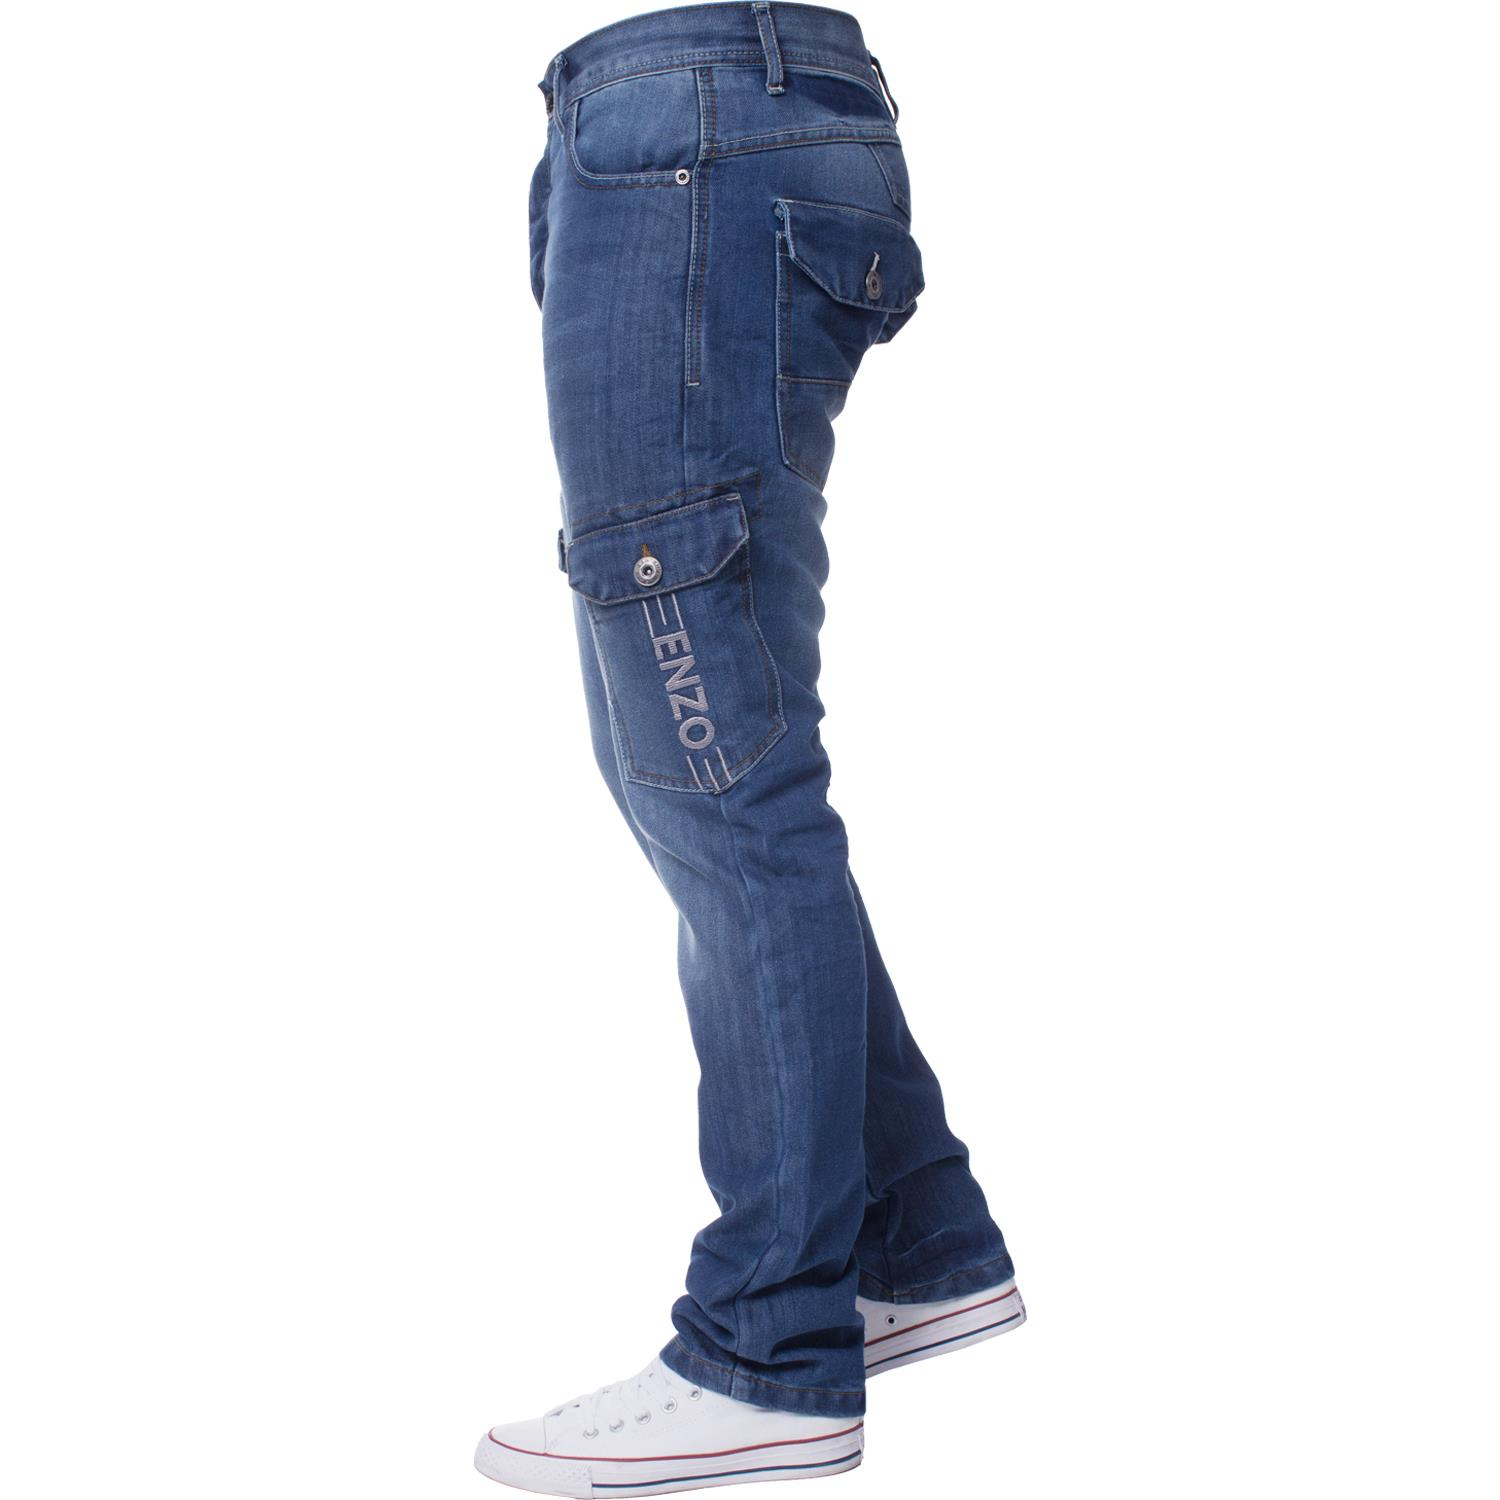 Enzo-Mens-Jeans-Big-Tall-Leg-King-Size-Denim-Pants-Chino-Trousers-Waist-44-034-60-034 miniature 84